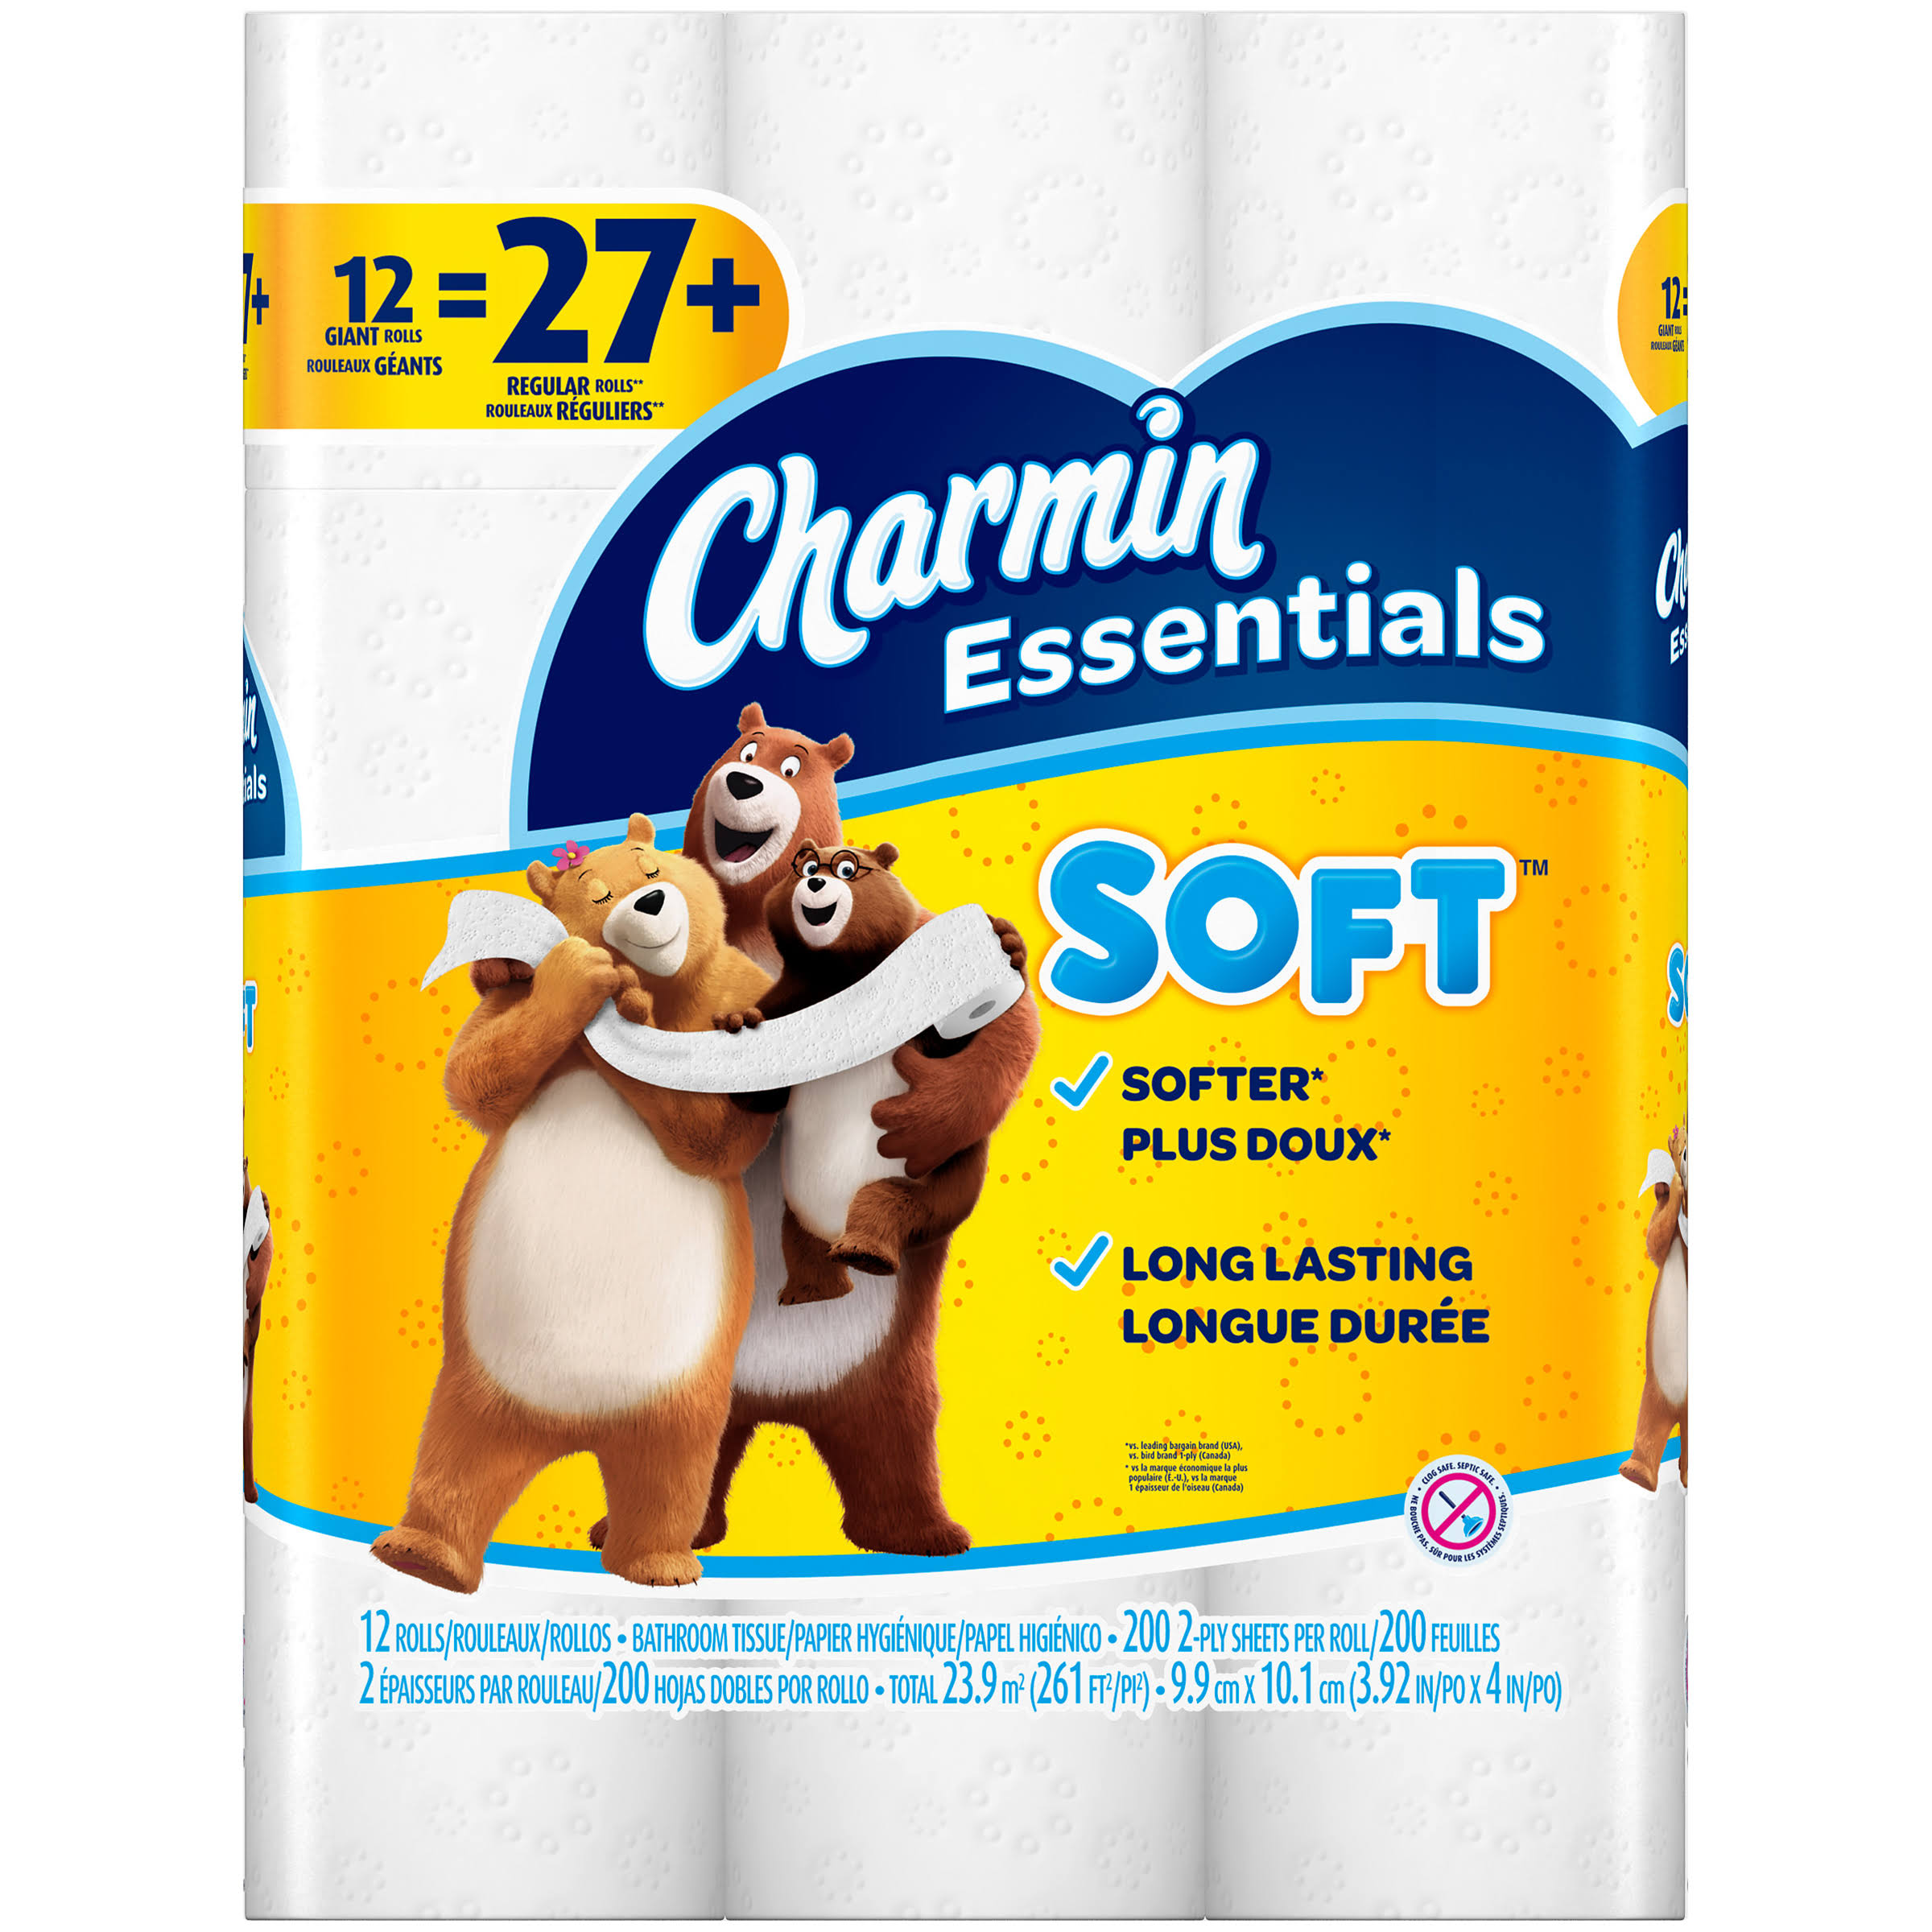 Charmin Essentials Toilet Tissue - 48 Giant Rolls